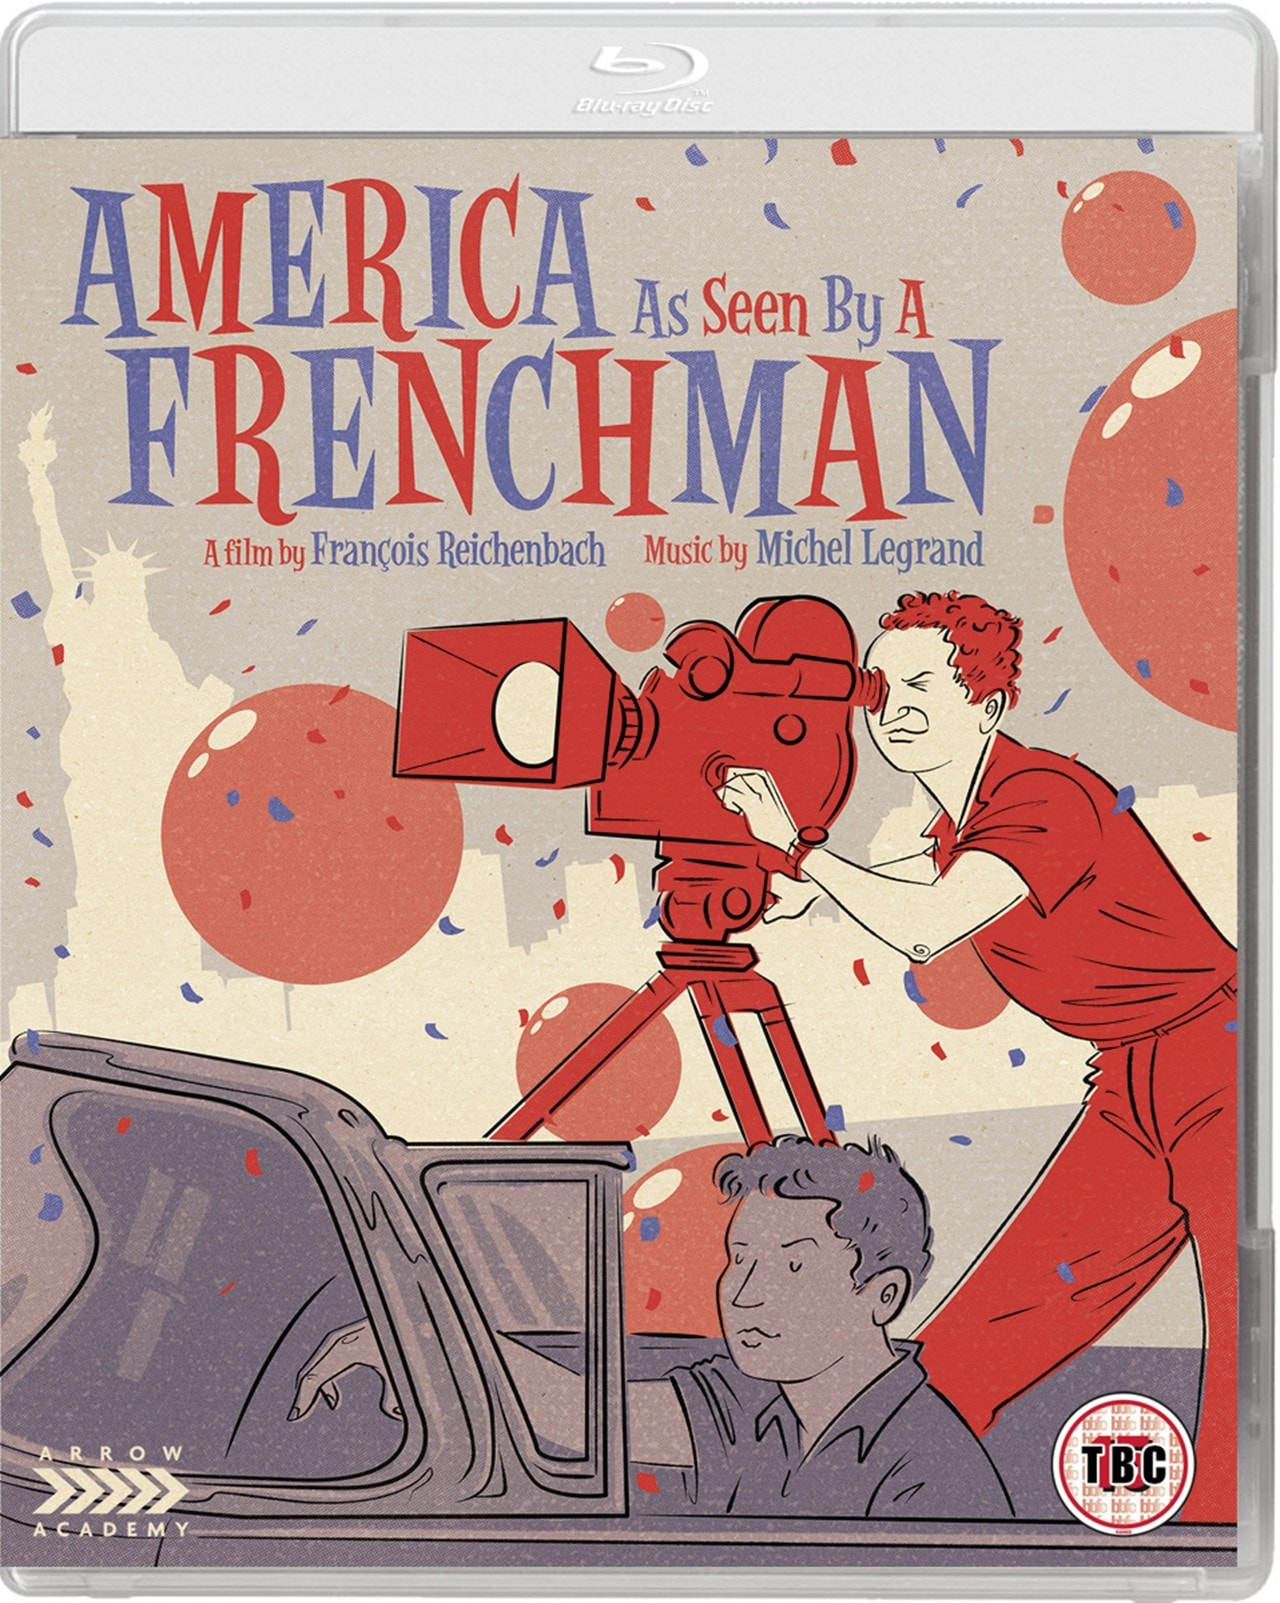 America As Seen By a Frenchman - 1